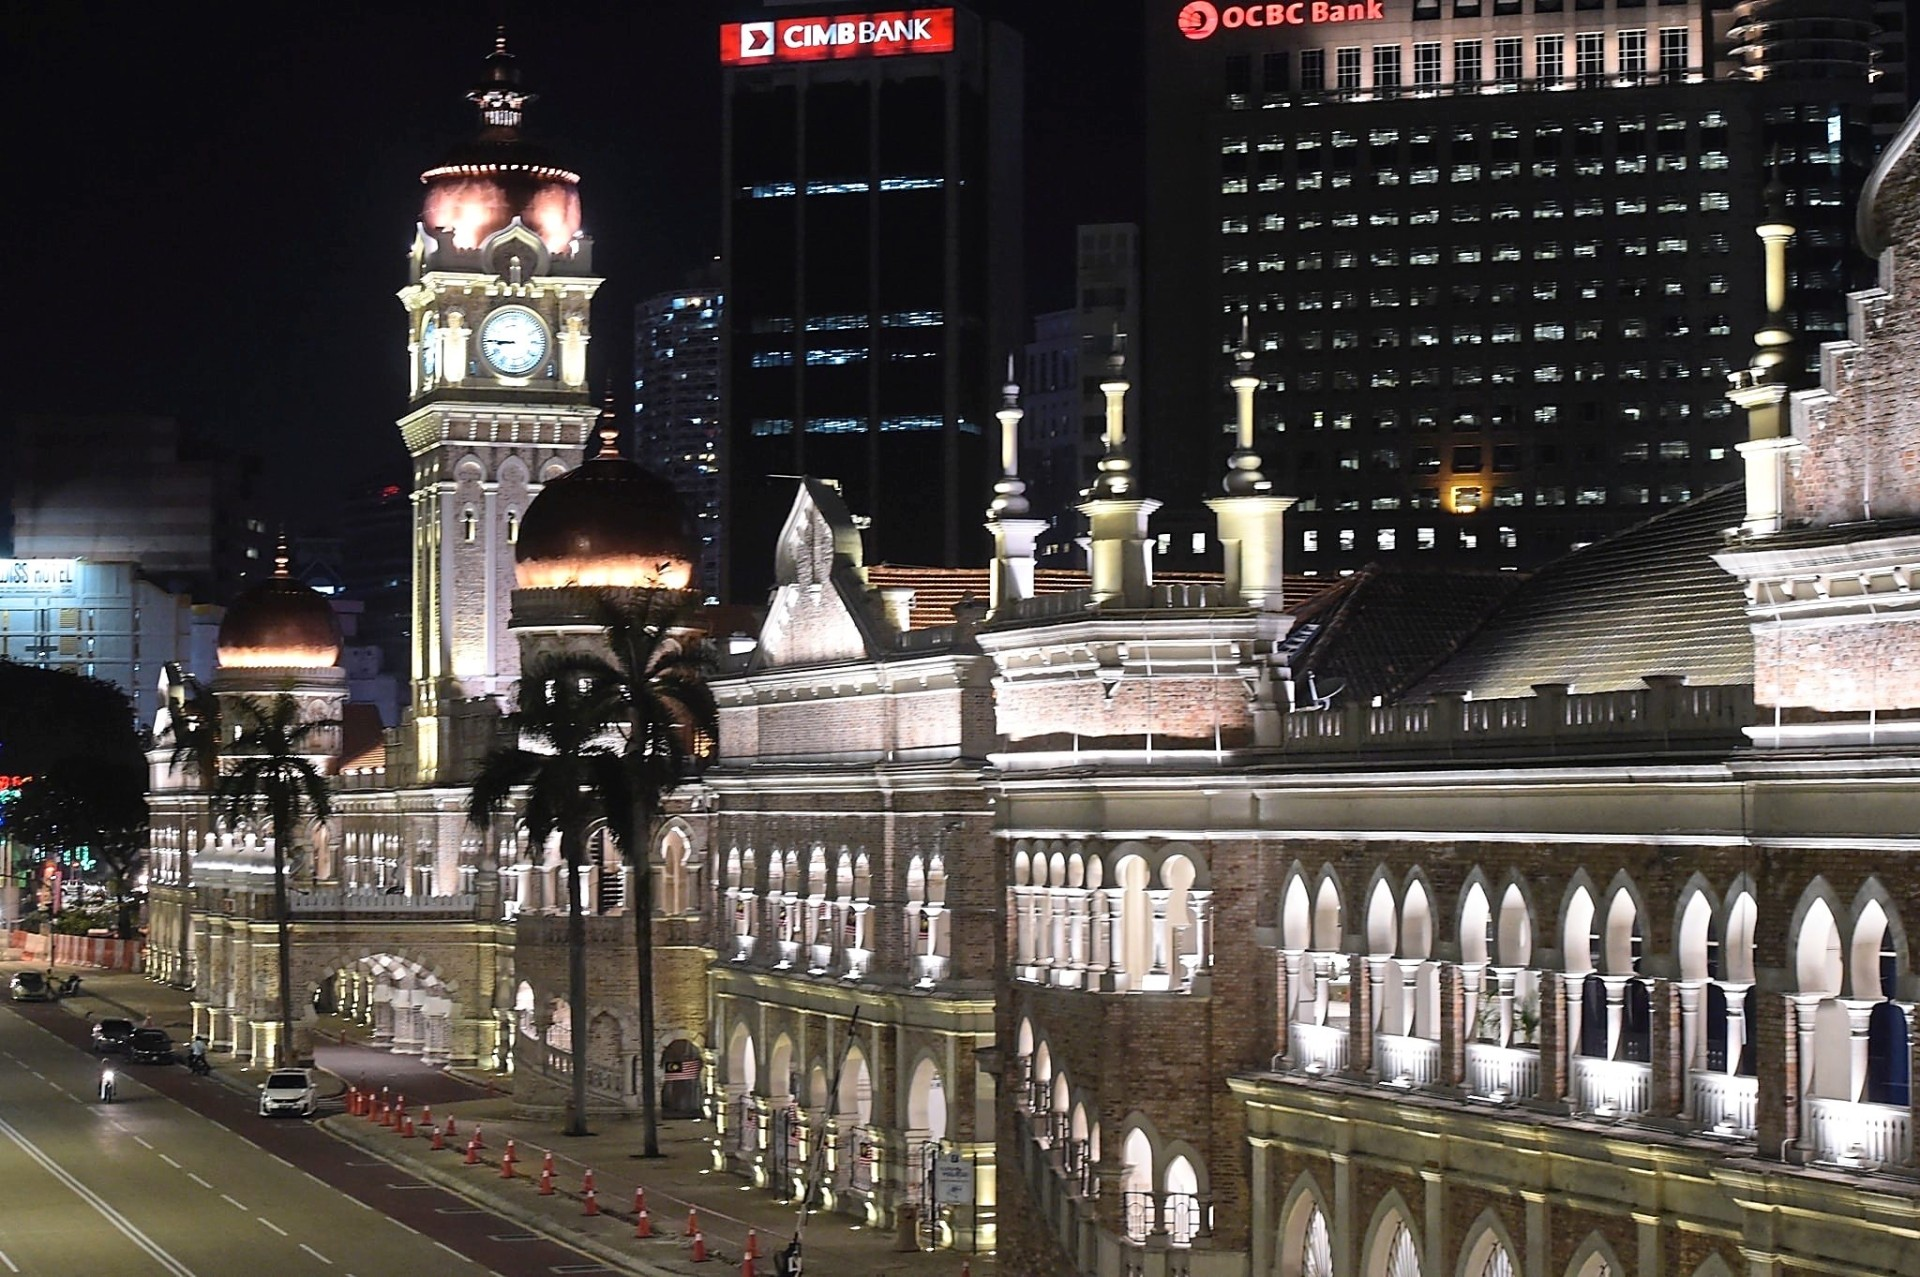 The initiative to light up structures such as the Sultan Abdul Samad building at night will continue. —filepic